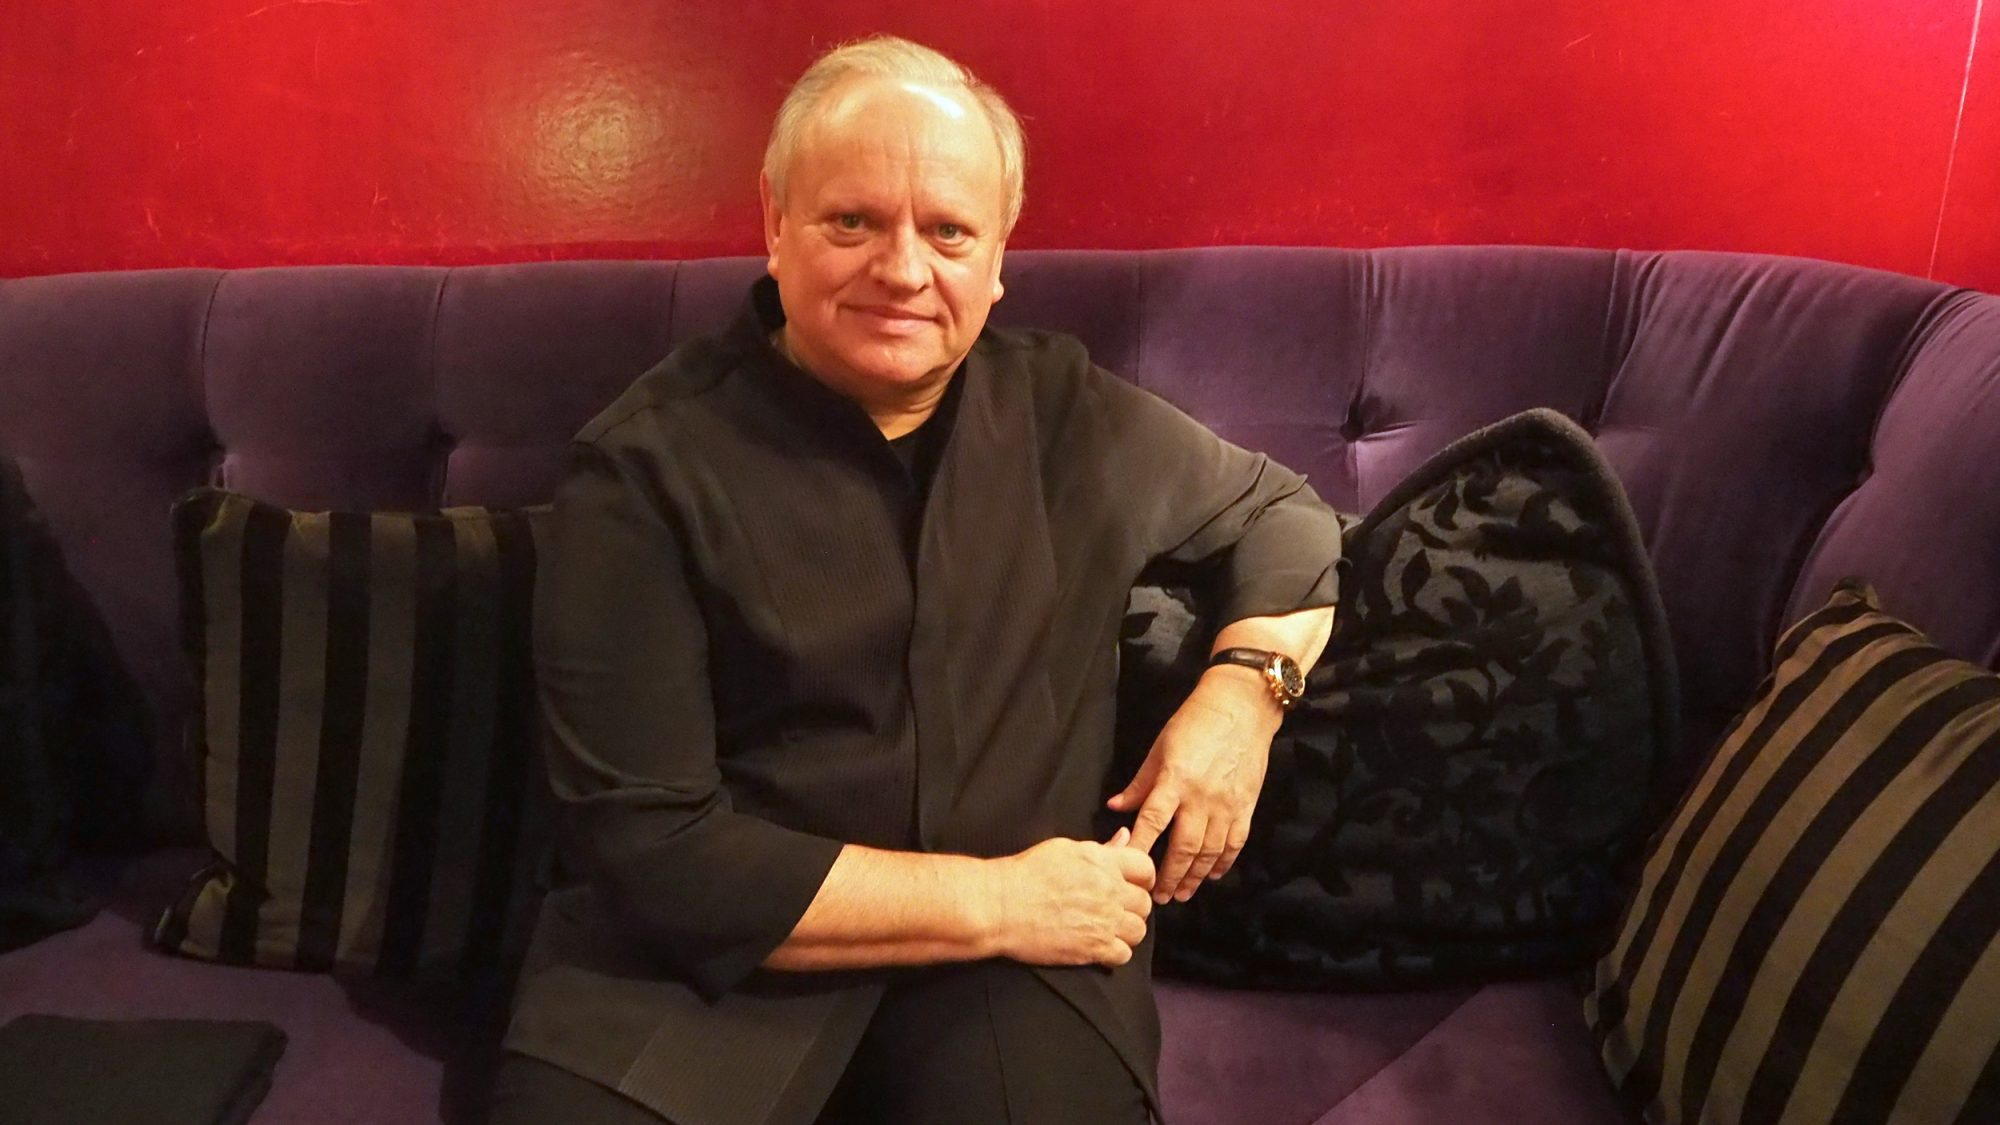 Joël Robuchon, the 'Most Starred Chef' in the World, Dies at 73